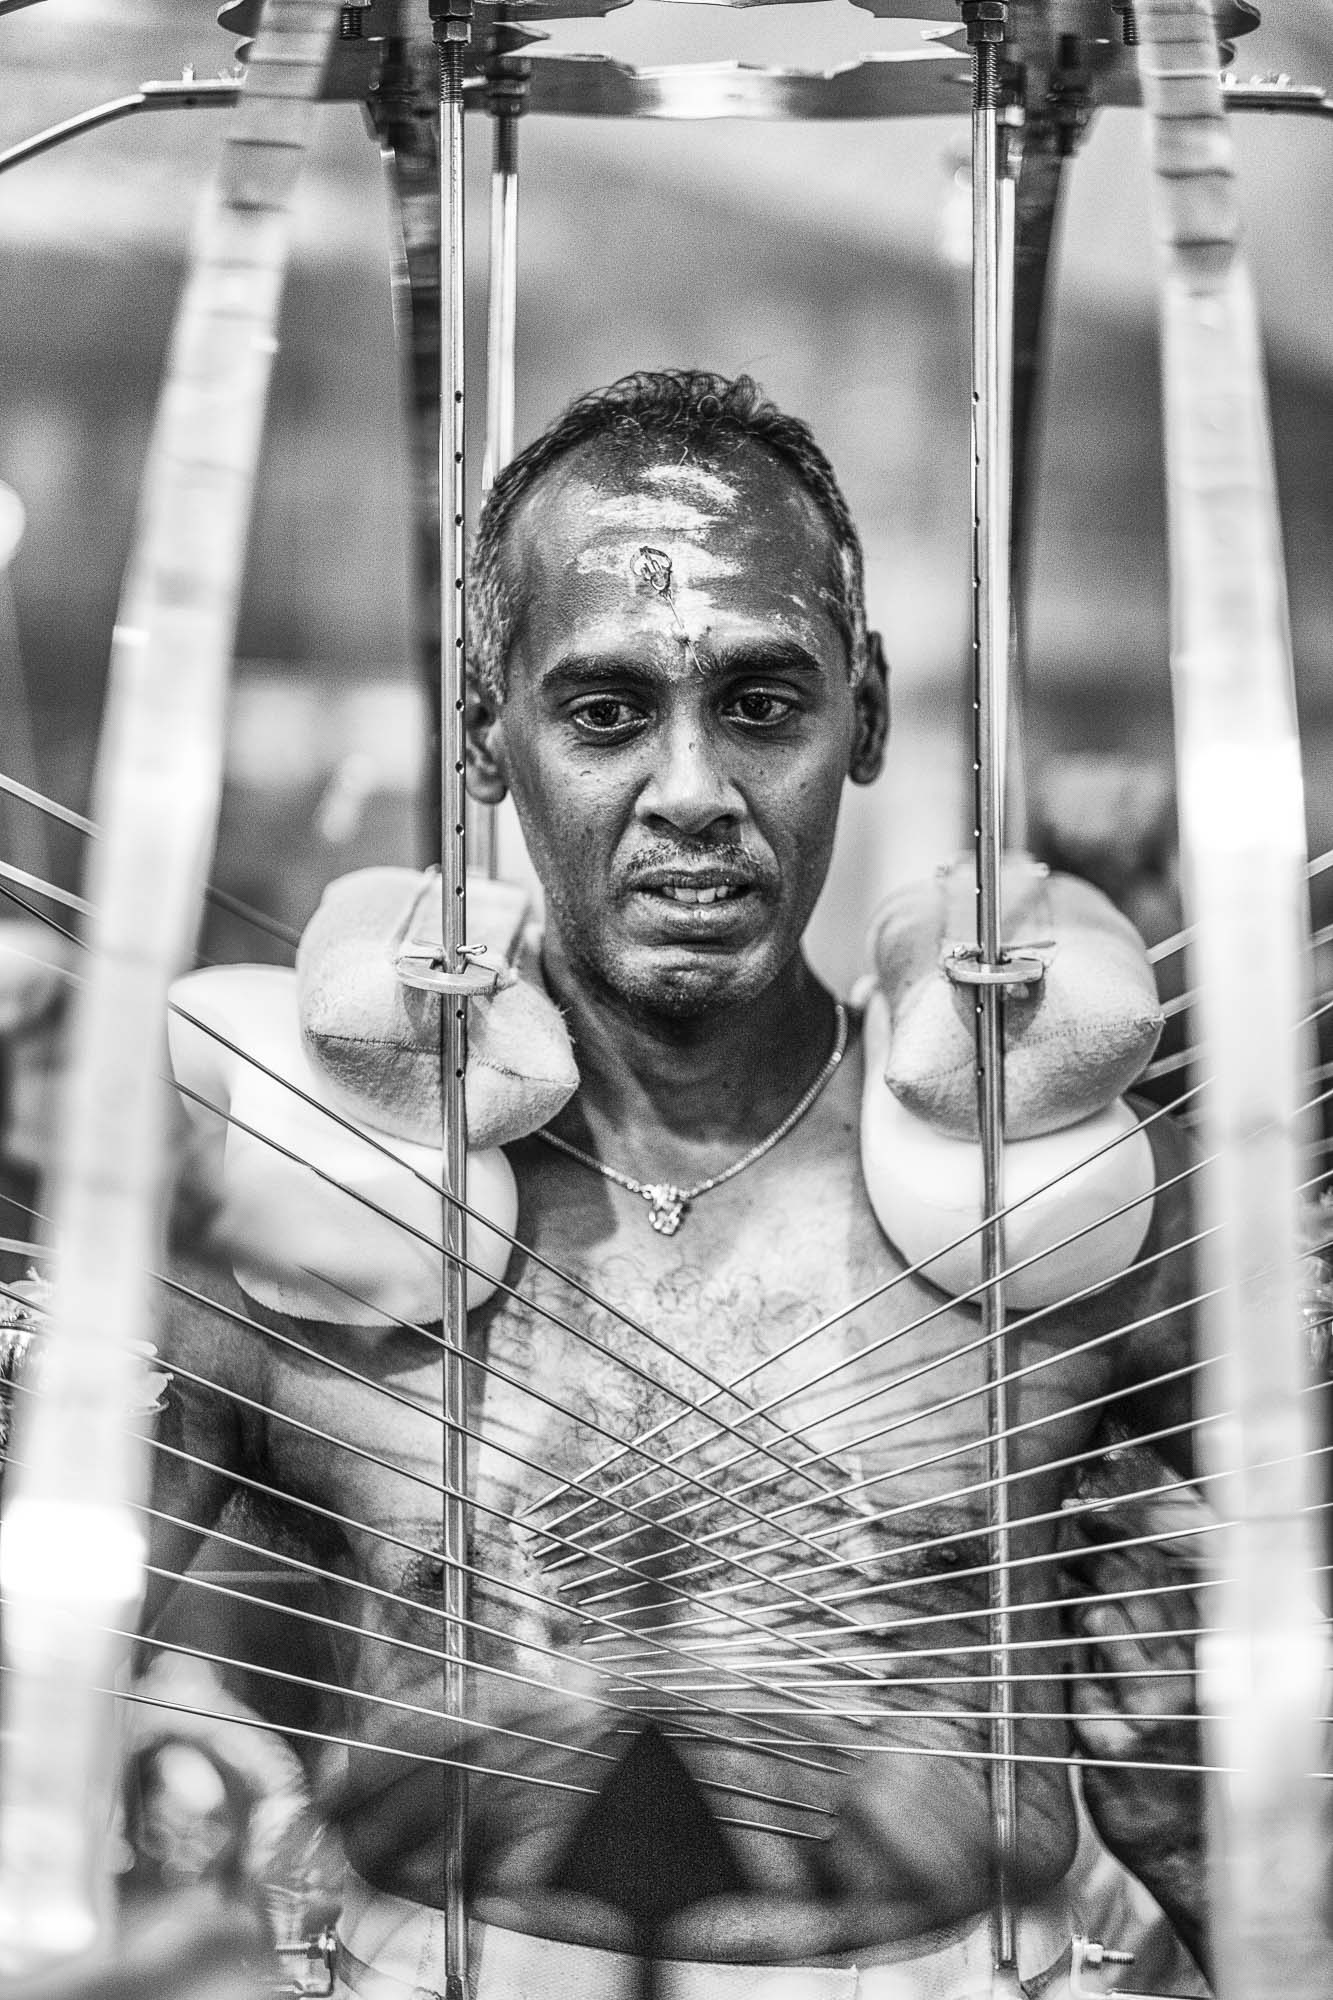 piercing body iron temple Little India Thaipusam Festival hindu Singapore photography jose jeuland documentary event